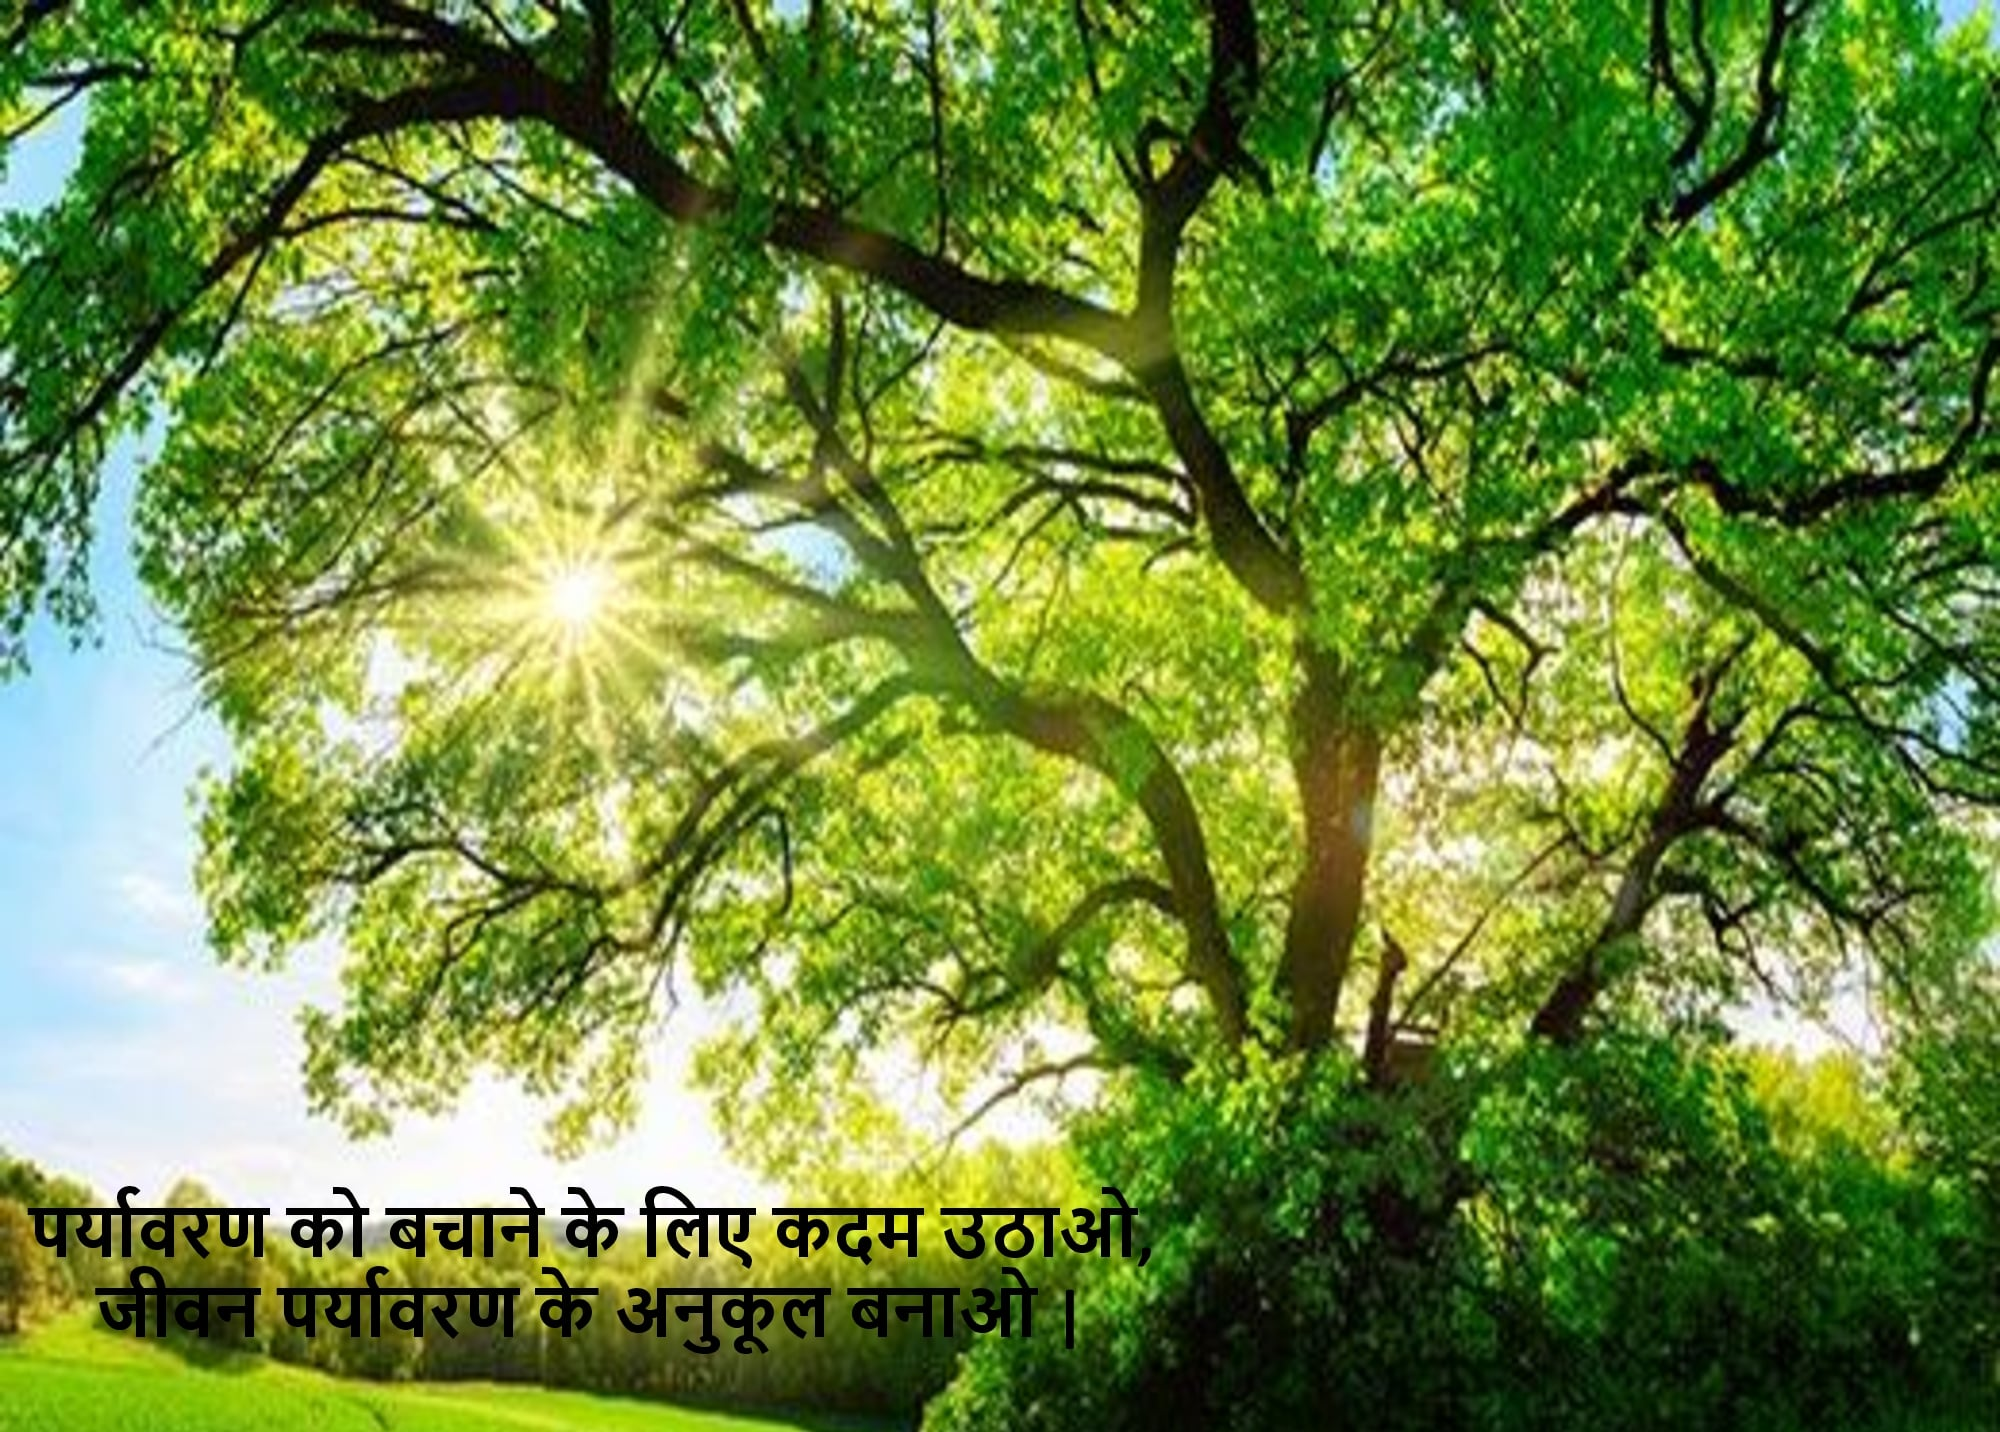 Save Environment Shayari In Hindi - Slogan